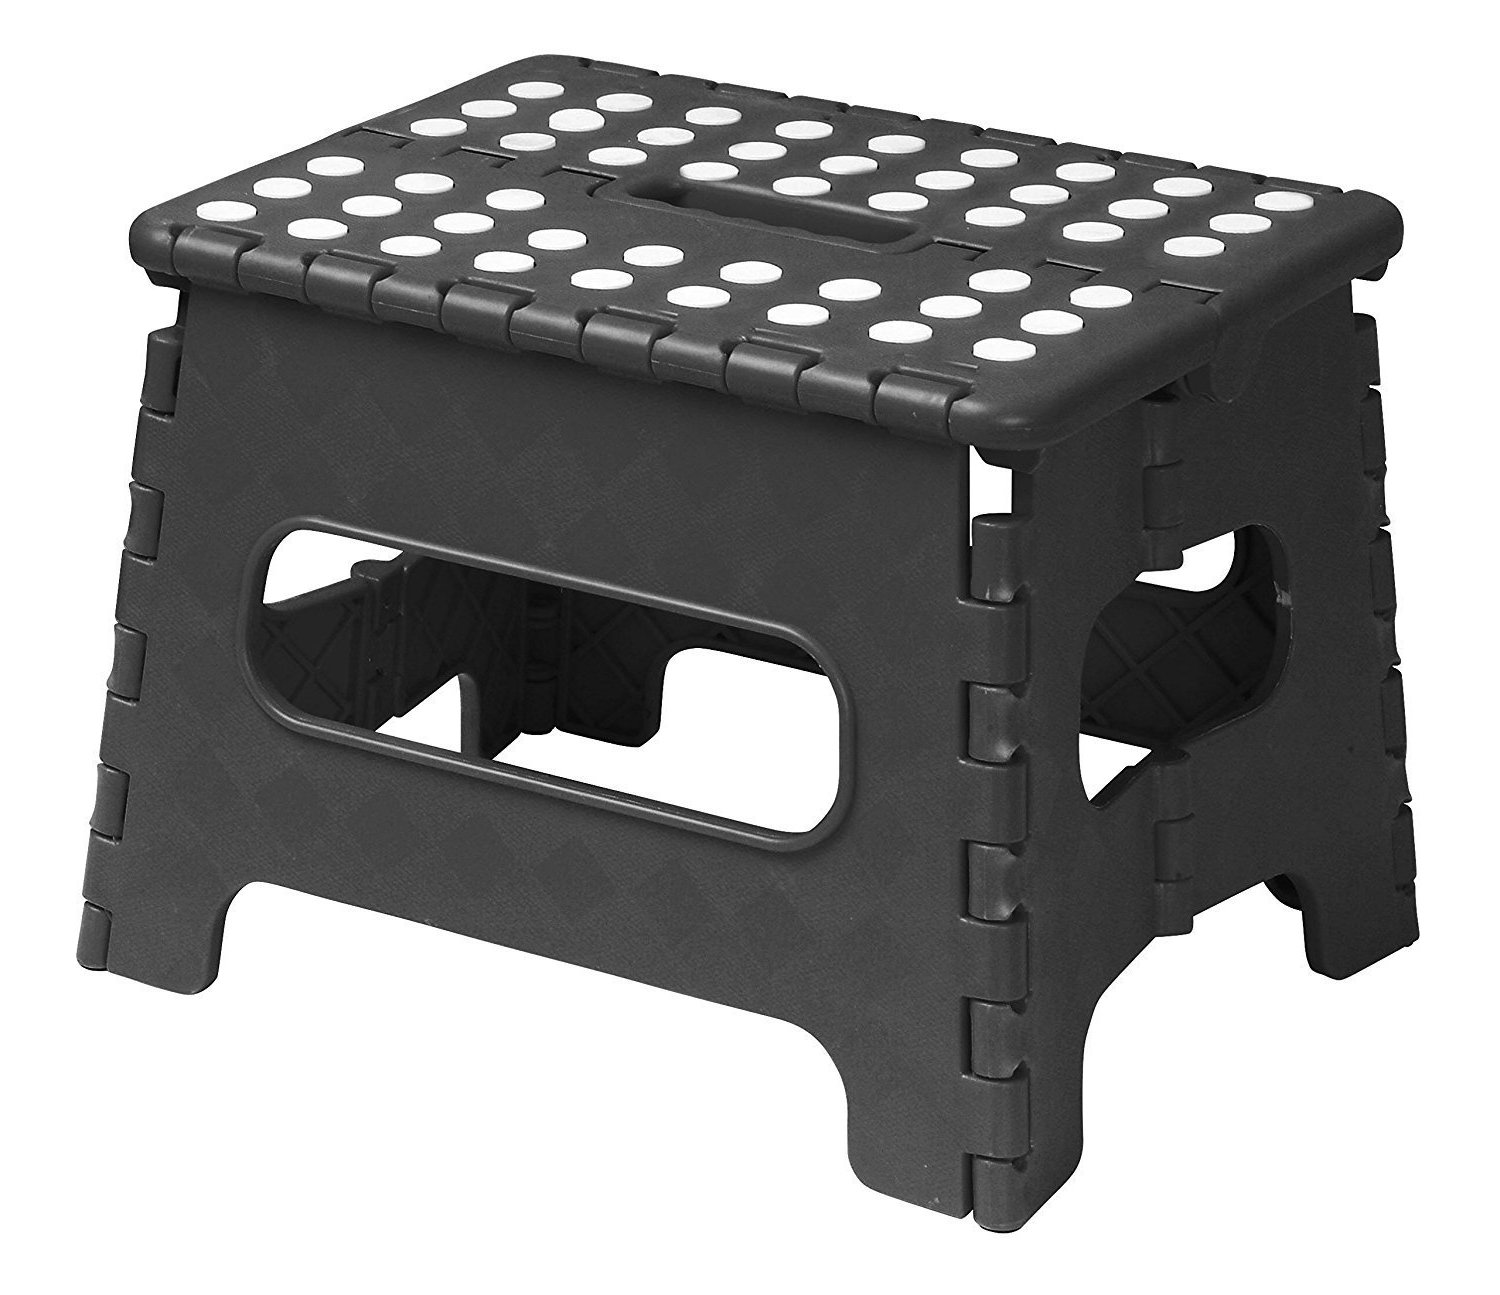 Acko 9 Quot X 11 Quot Black Folding Step Stool Great For Kids And